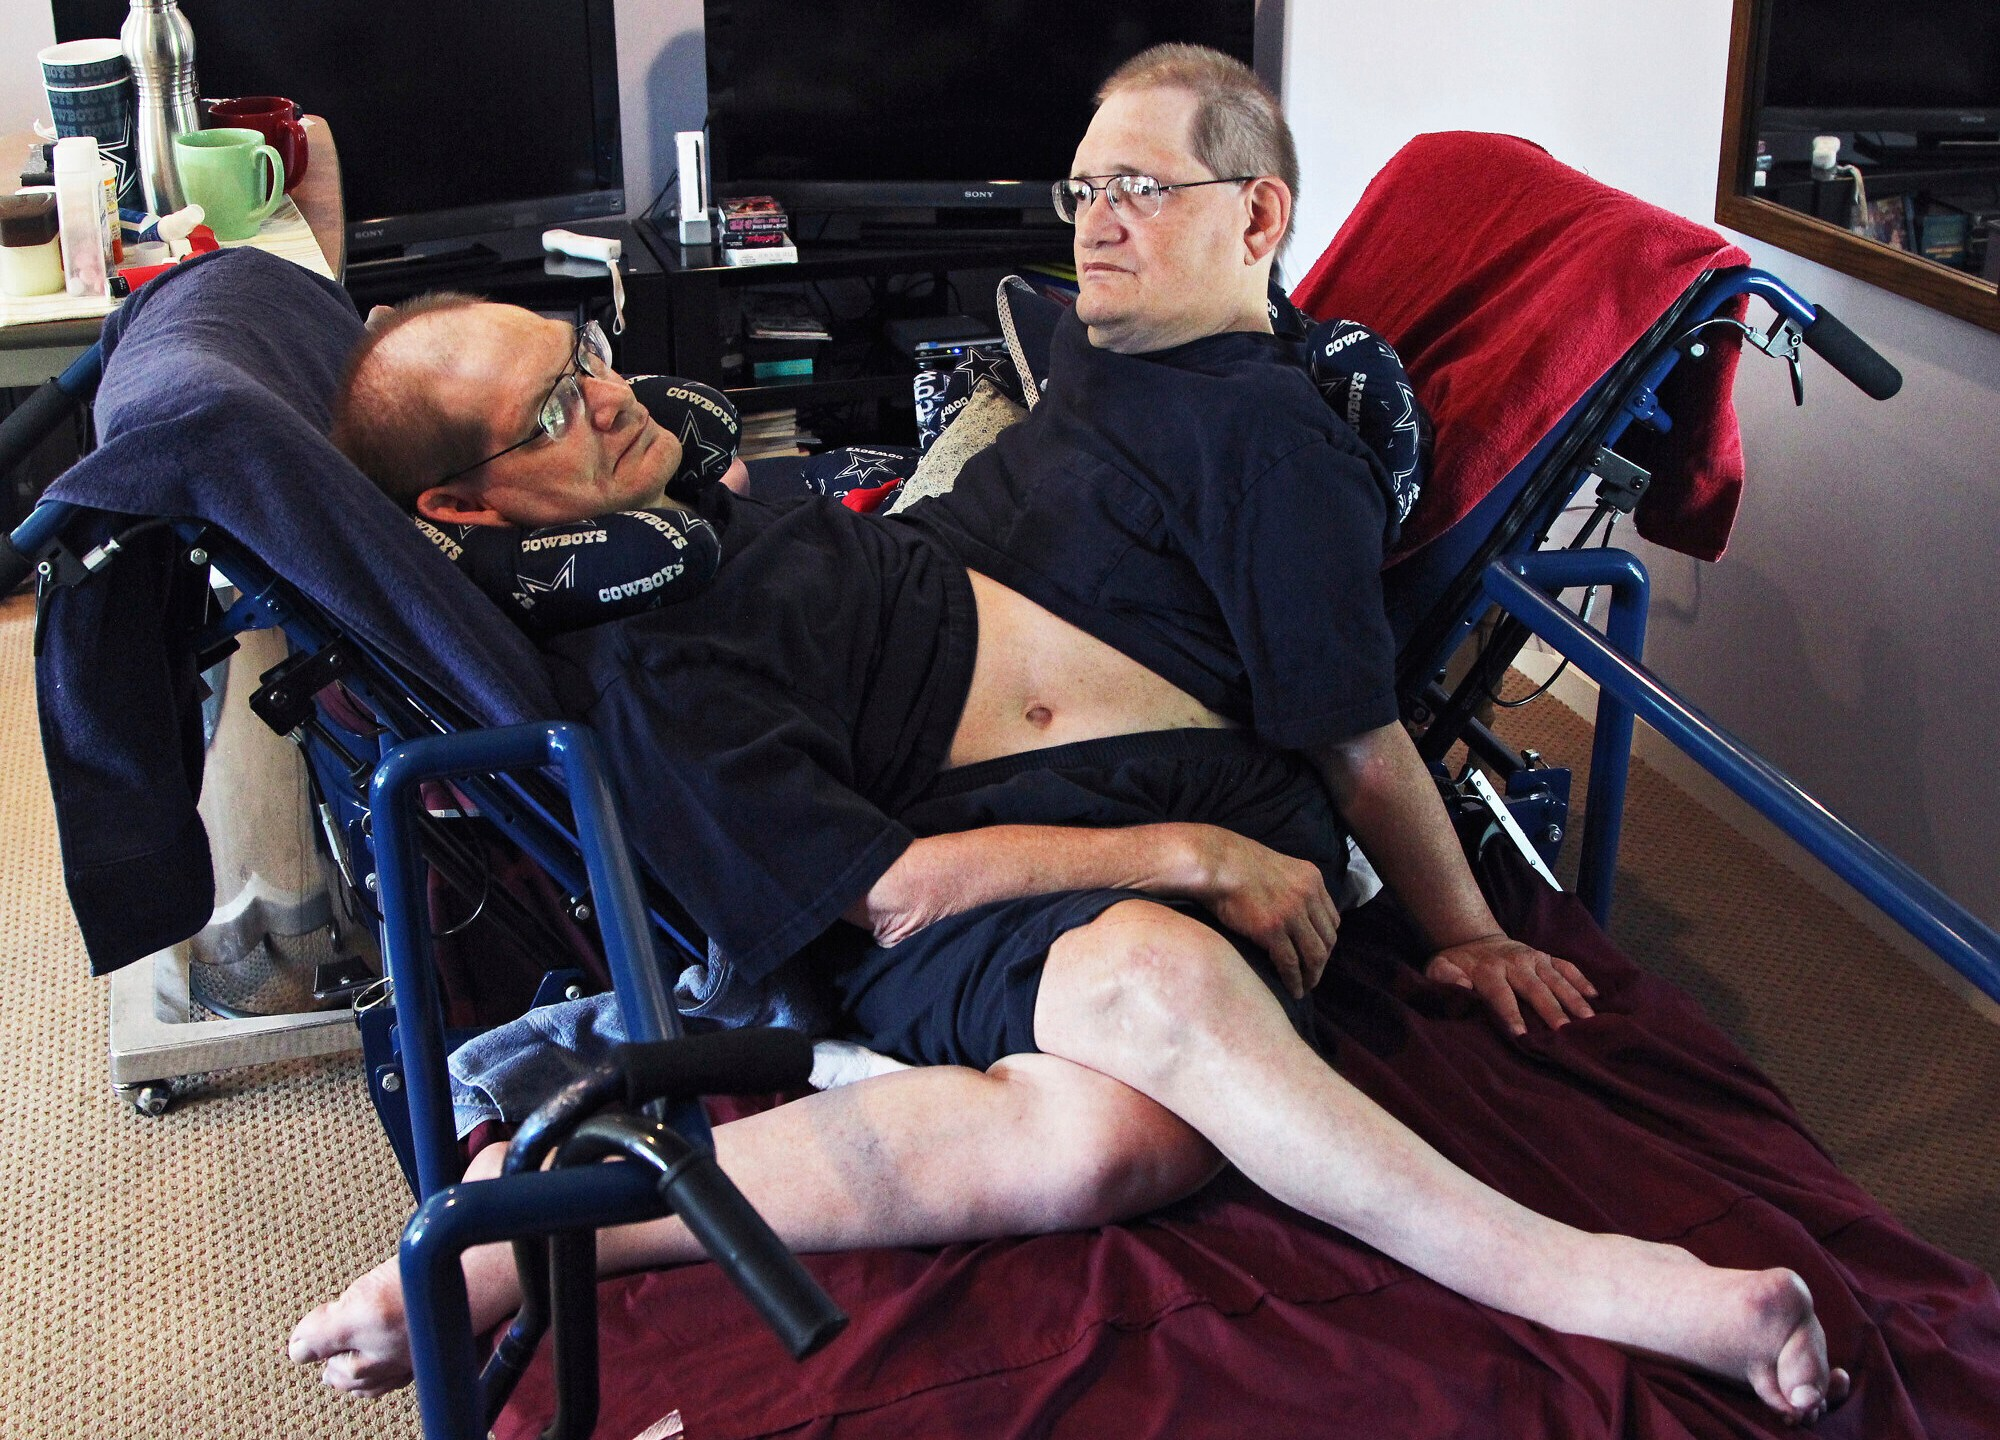 Donnie, left, and Ronnie Galyon sit inside their Beavercreek, Ohio, home, in a July 2, 2014 file photo. (Drew Simon/Dayton Daily News via AP, File)